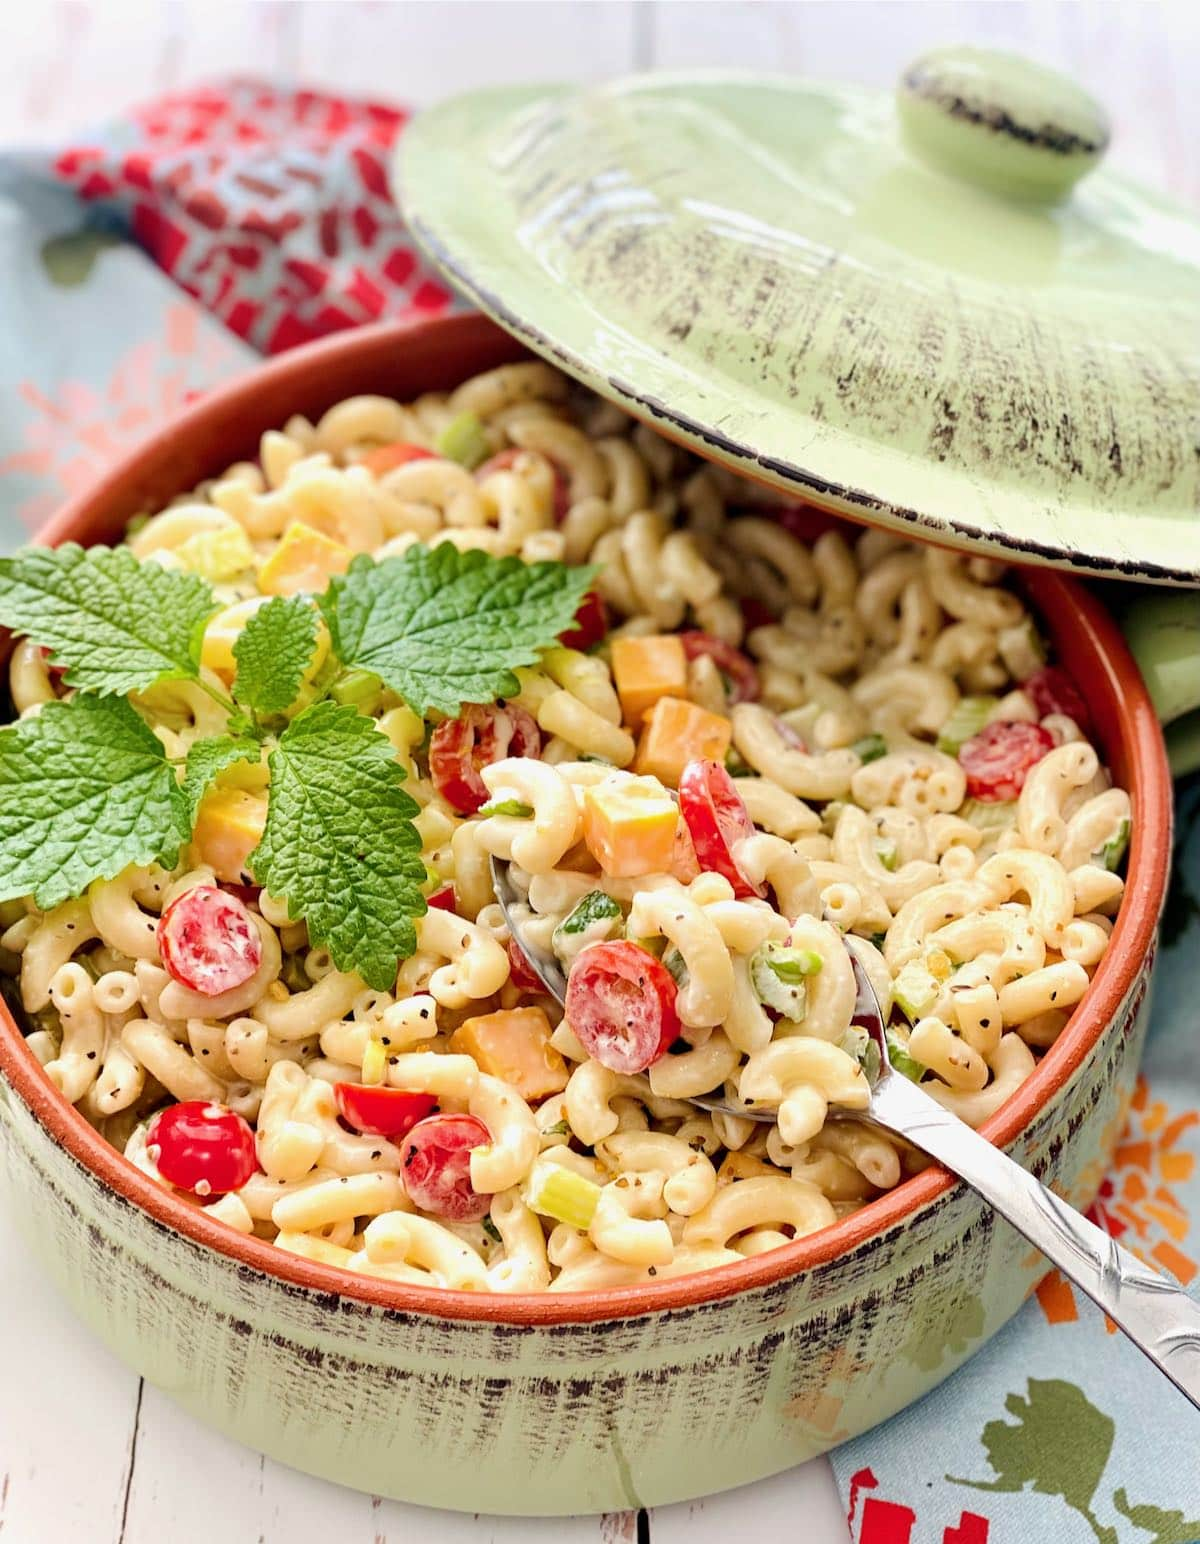 a green dish filled with southern macaroni salad.